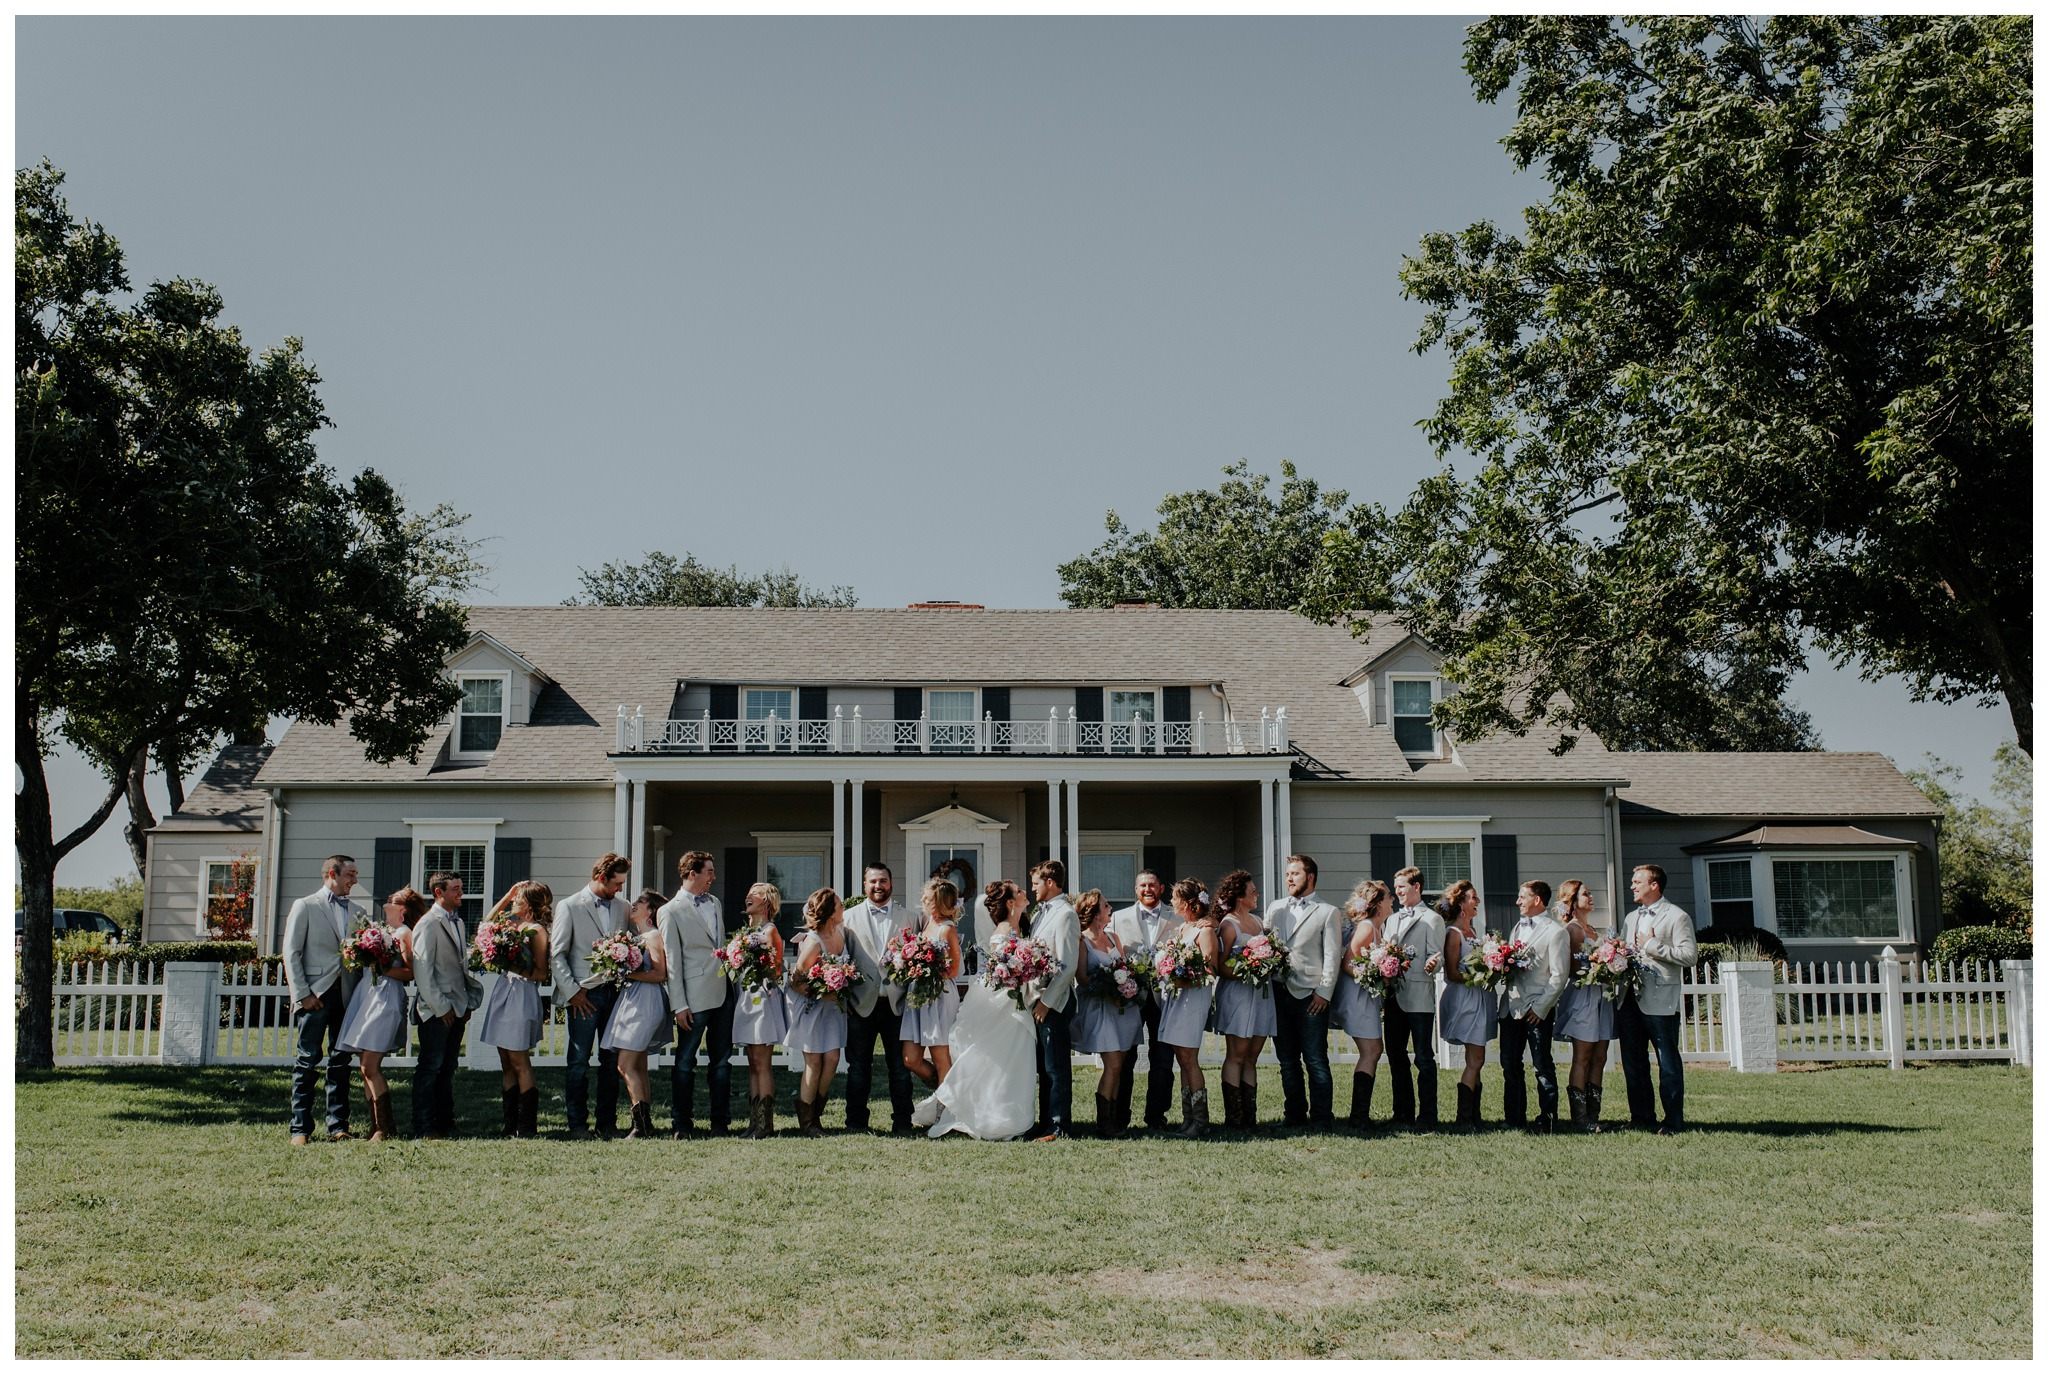 Whimsical Ranch West Texas Wedding - DIY Farm Wedding-7805.jpg